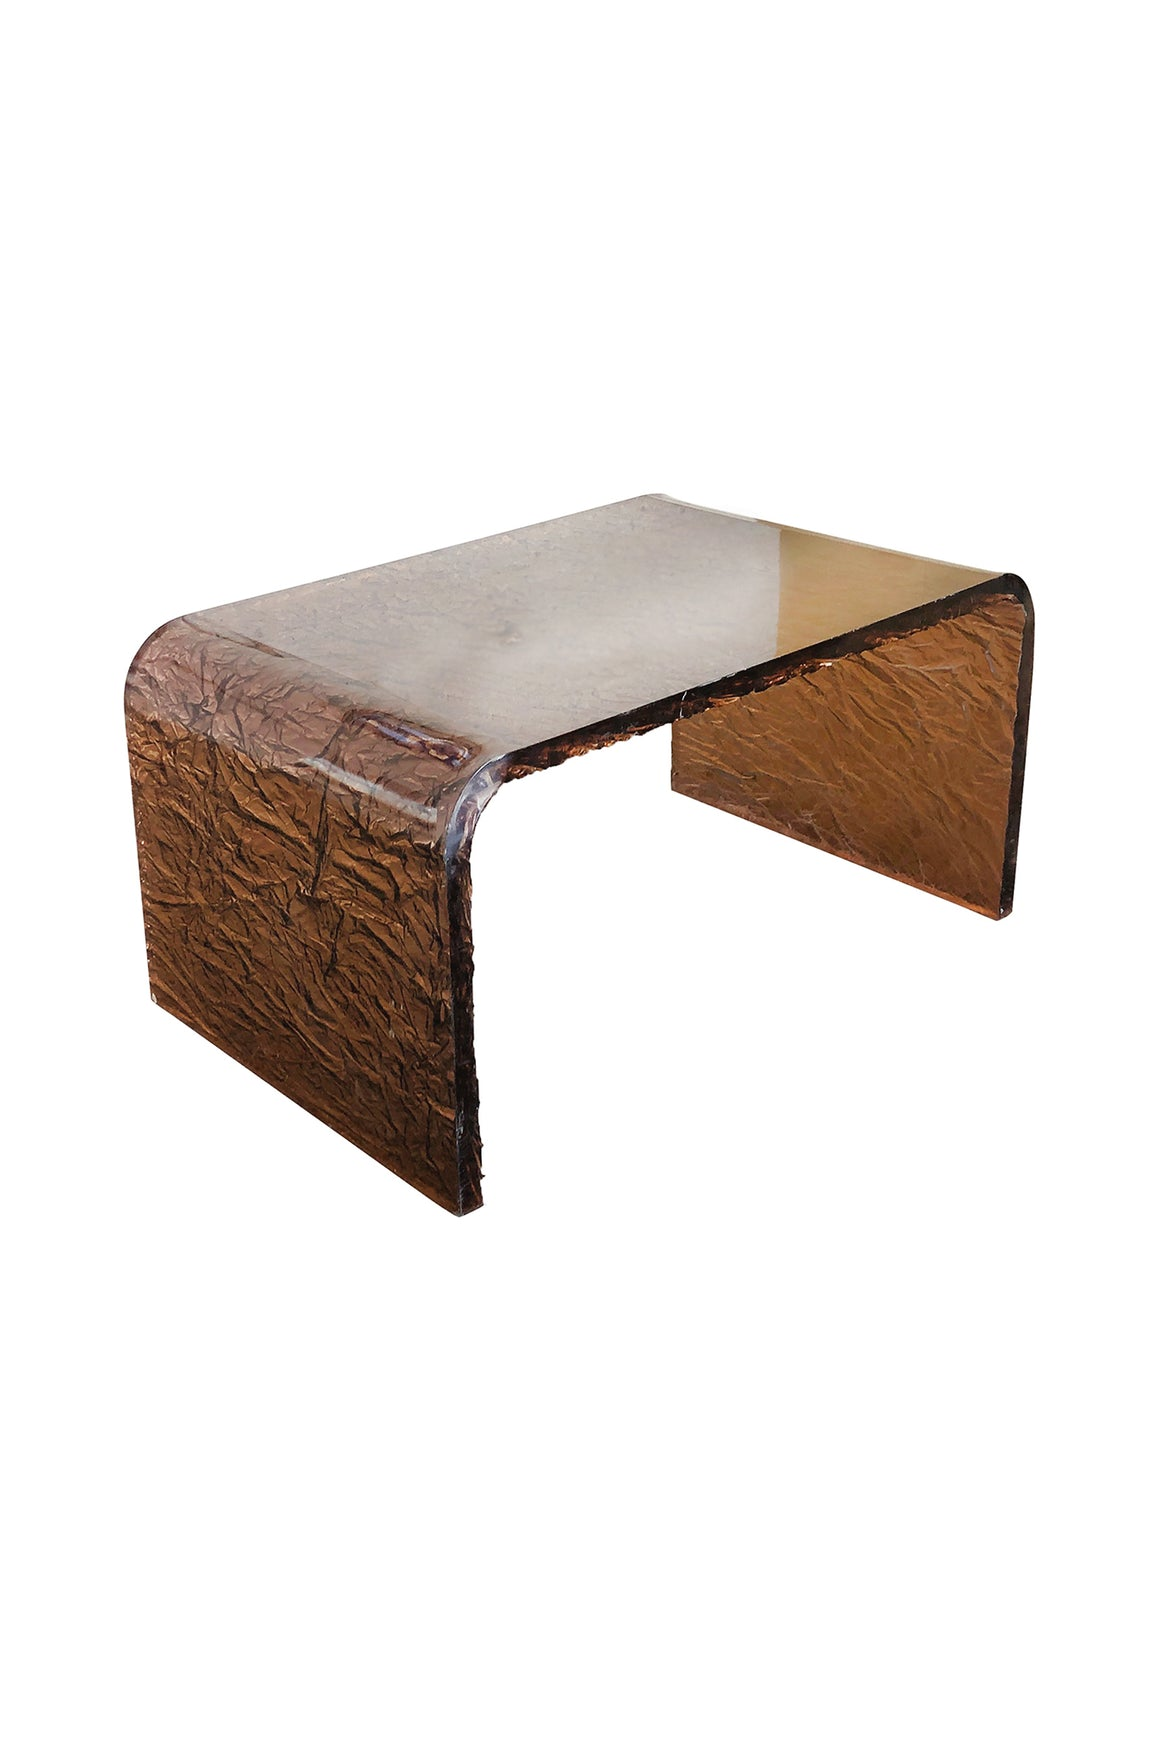 Karl Springer Style Copper-Toned Lucite Side Table